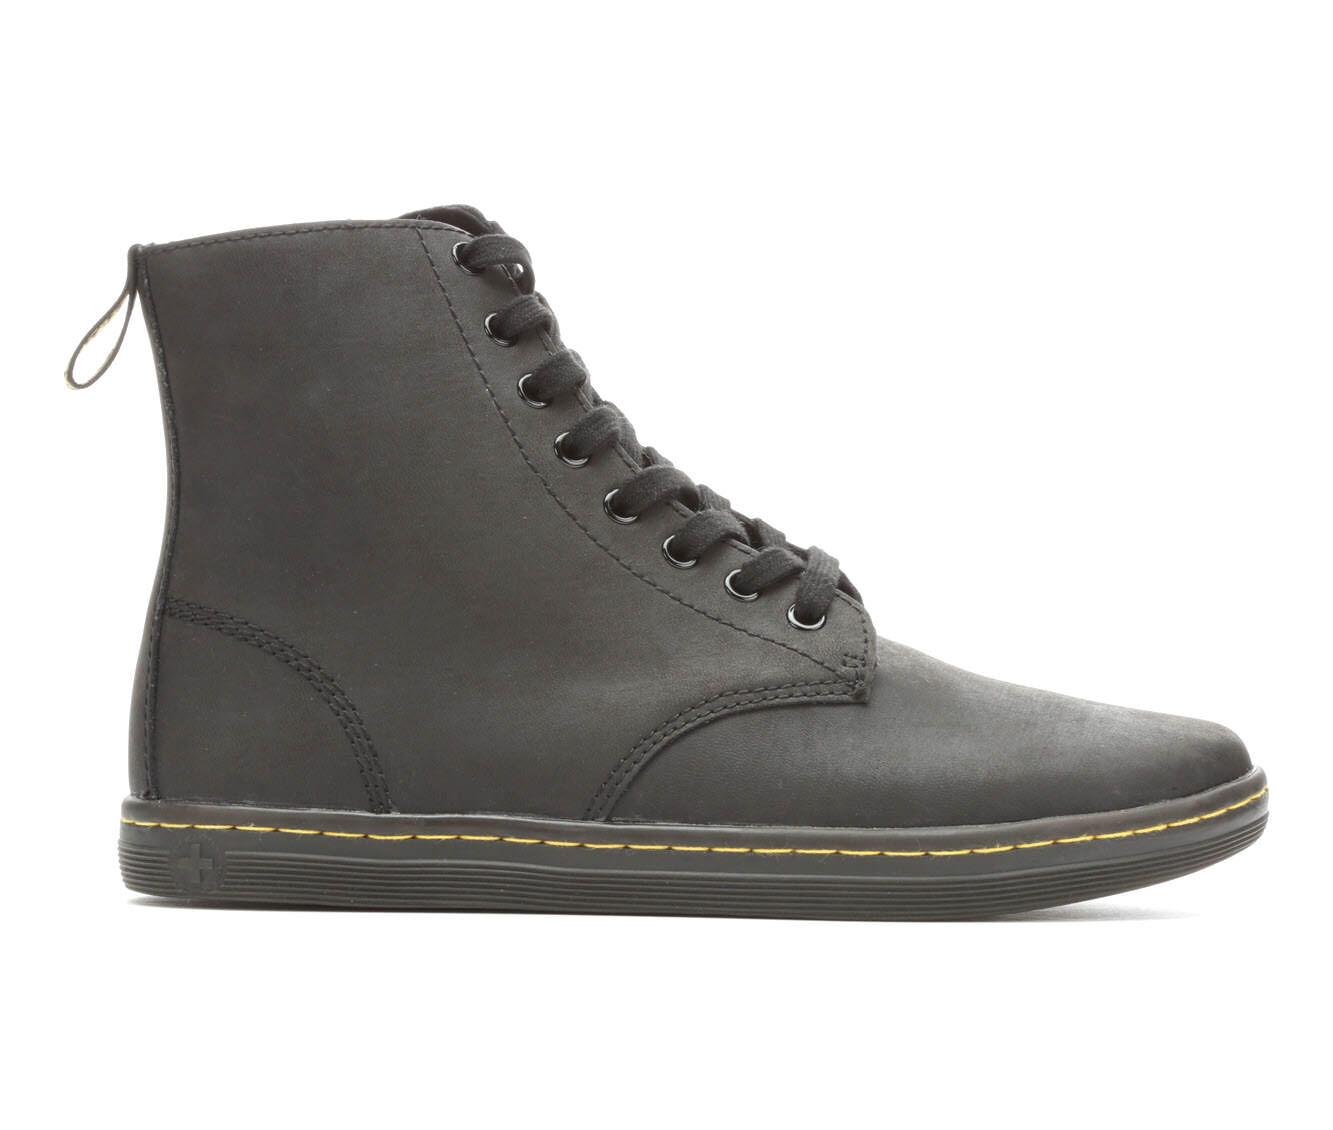 Men's Dr. Martens Tobias 8 Eye Boot High Top Sneaker Boot sale online shopping clearance 2015 new cheap real J2O7U7K